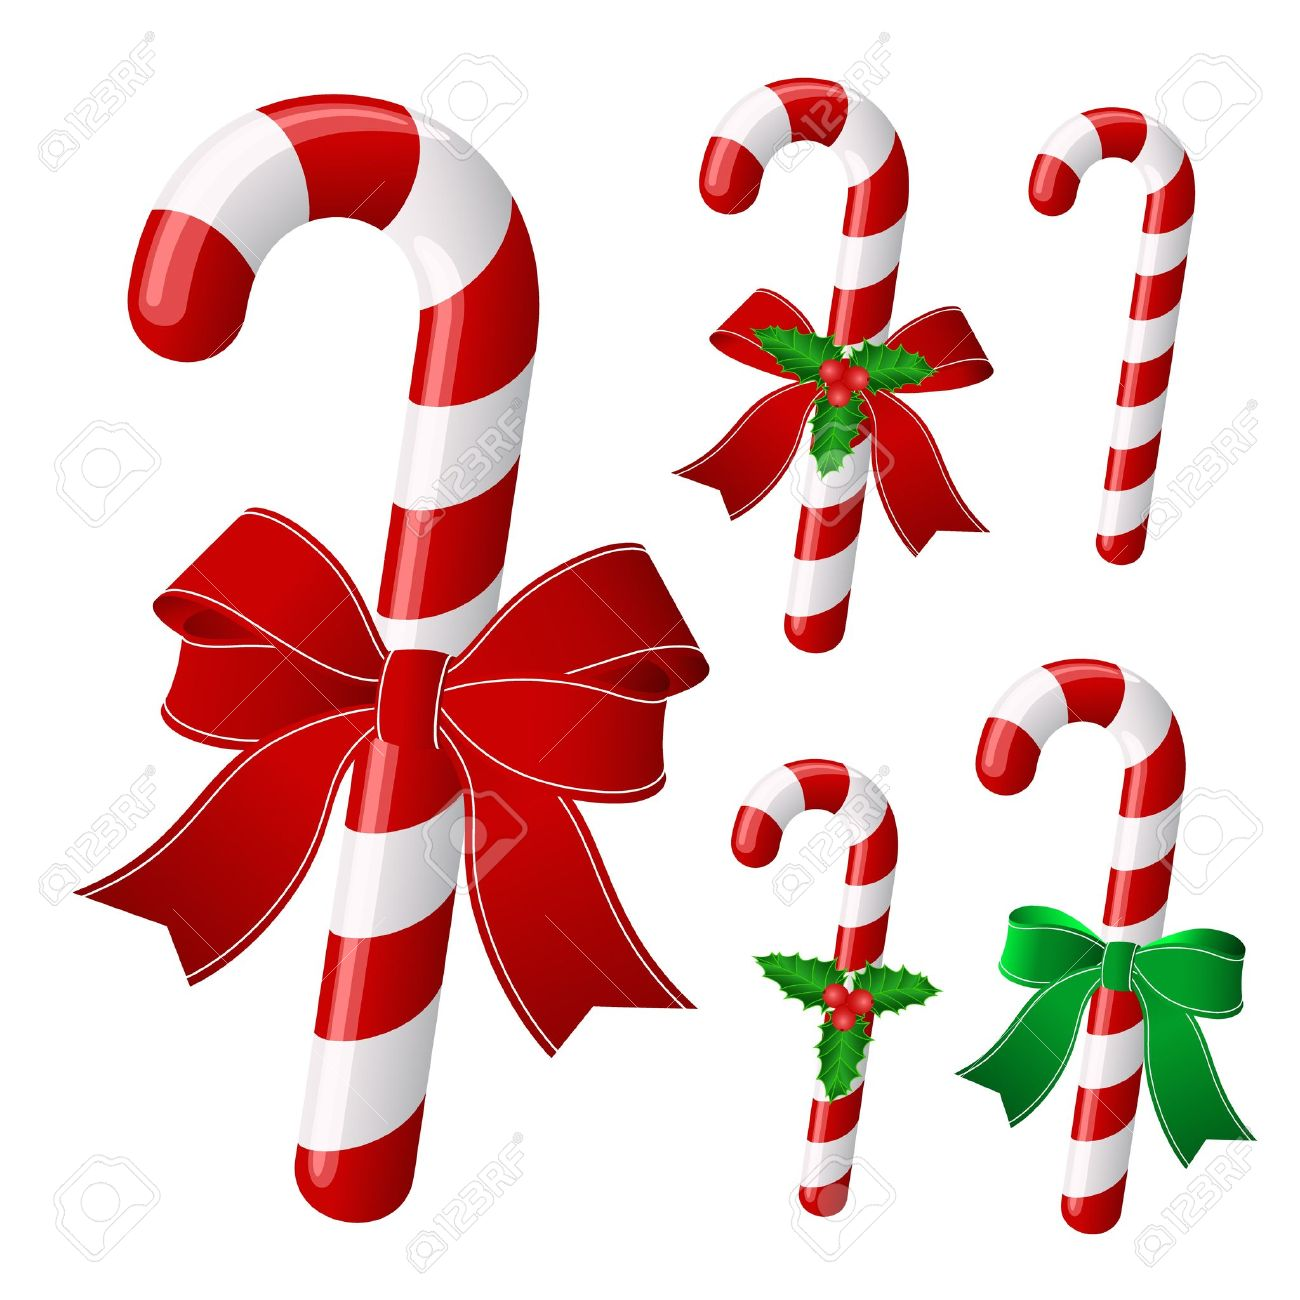 983 candycane stock illustrations cliparts and royalty free